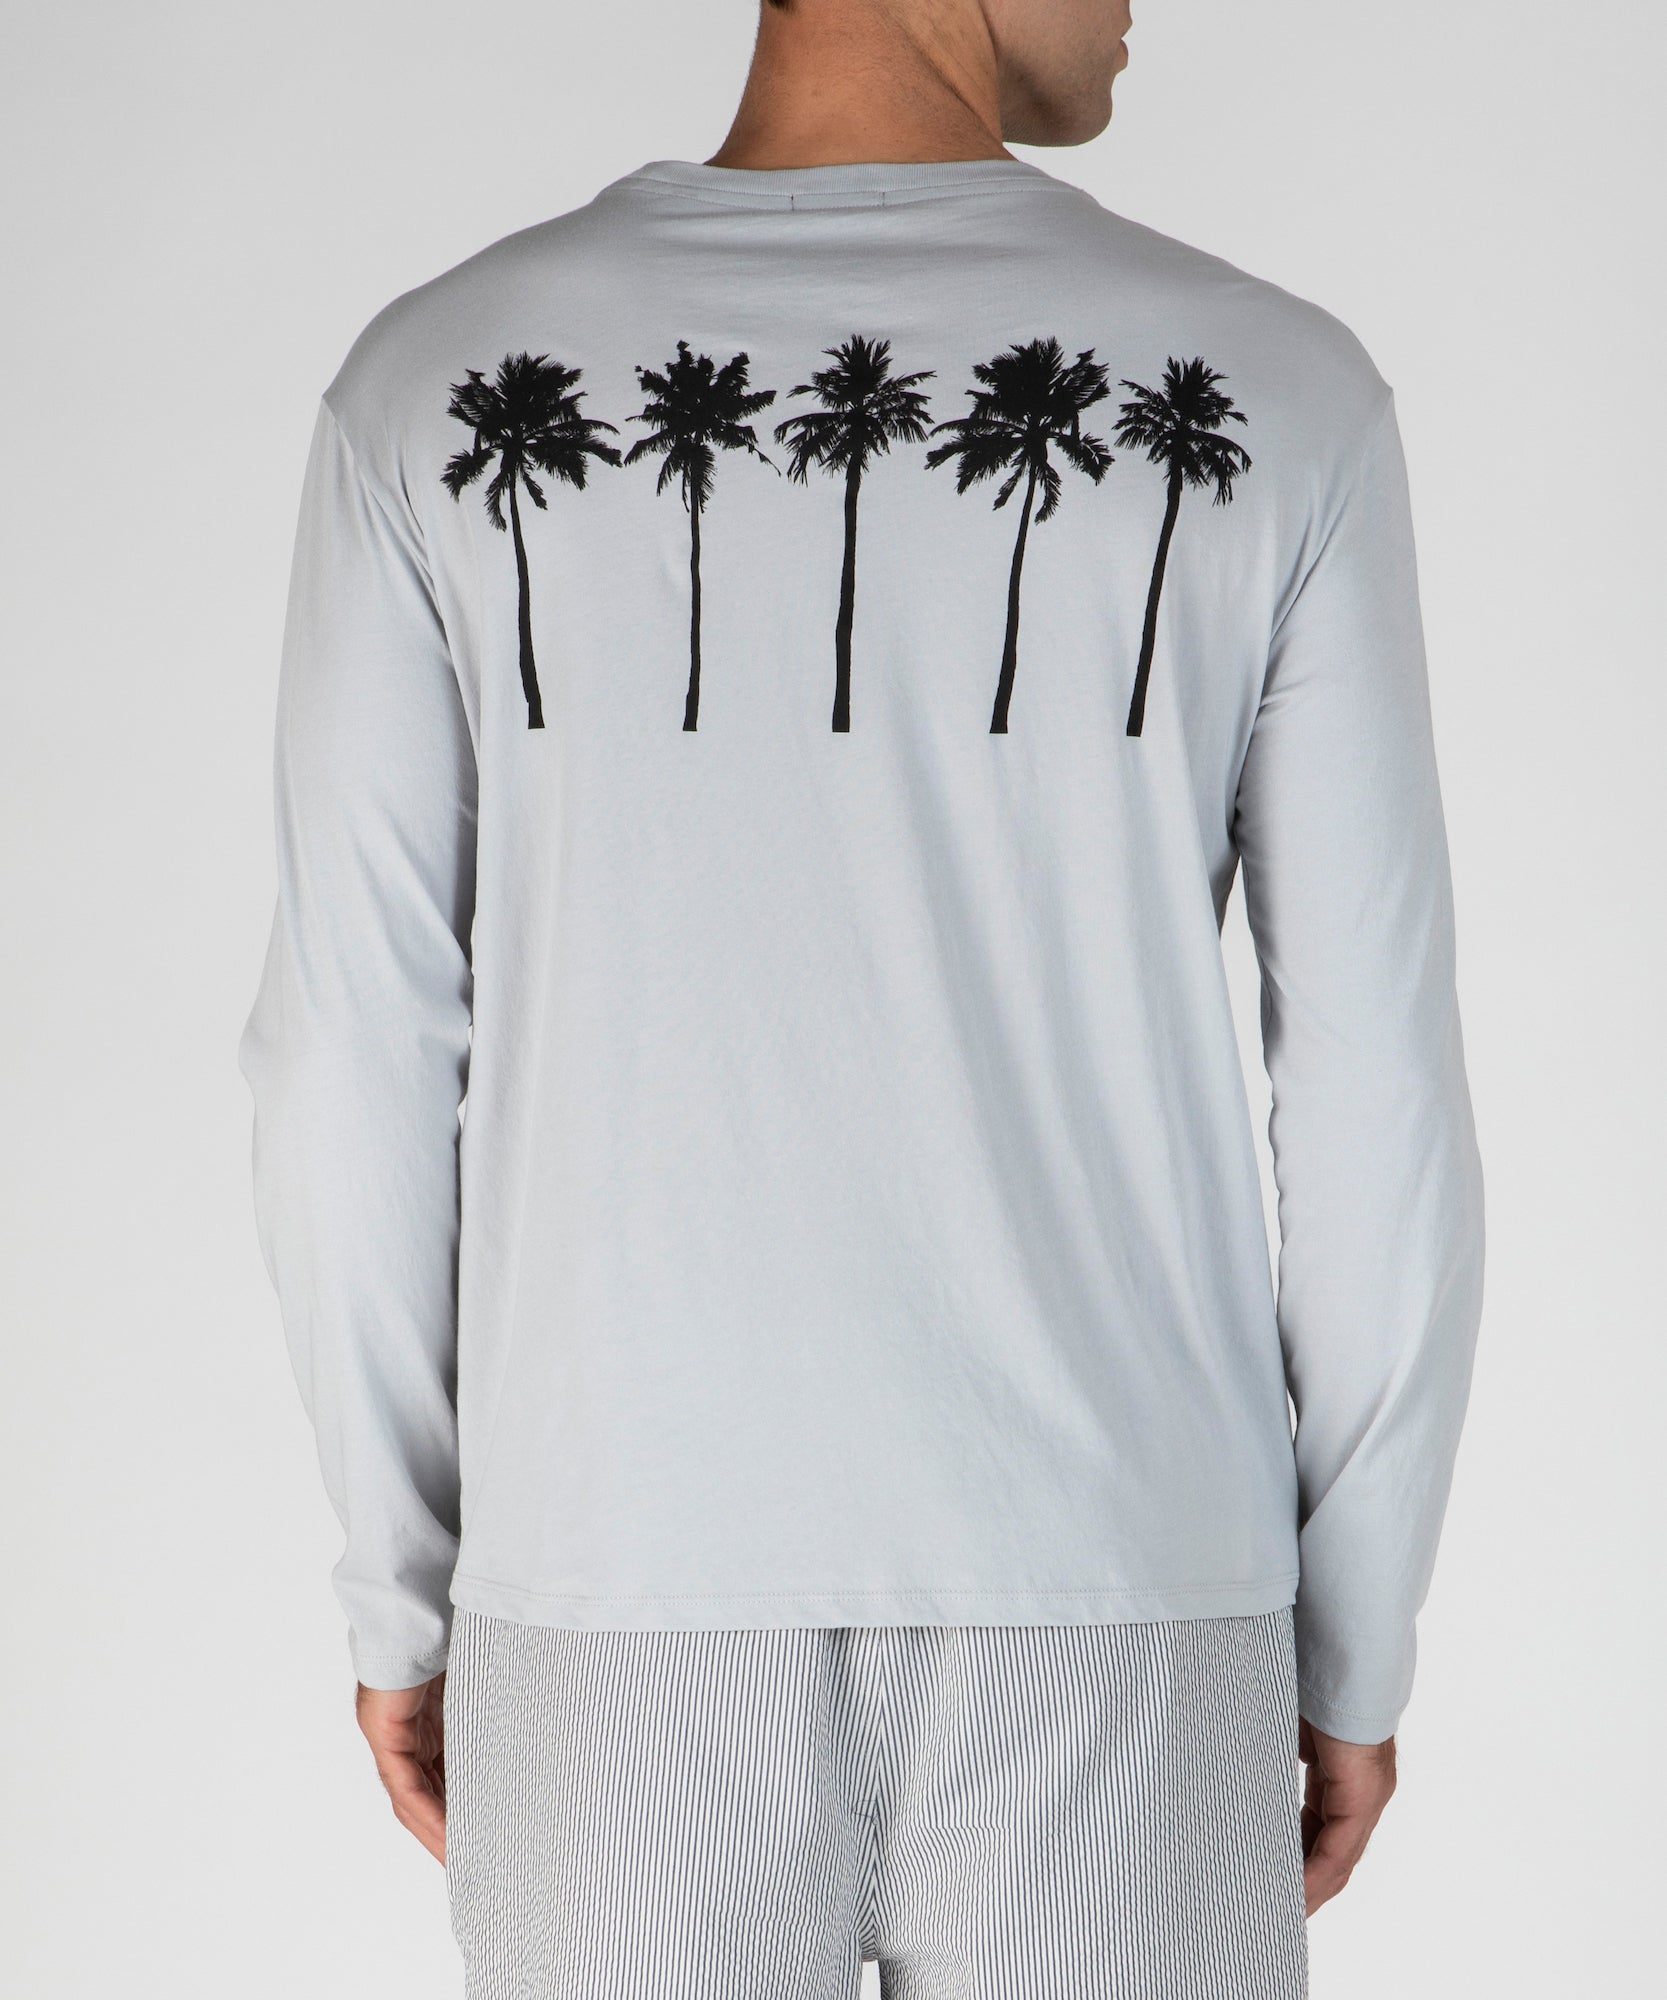 Grey Fog Classic Jersey Palm Print Long Sleeve Tee - Men's Cotton Long Sleeve Tee by ATM Anthony Thomas Melillo